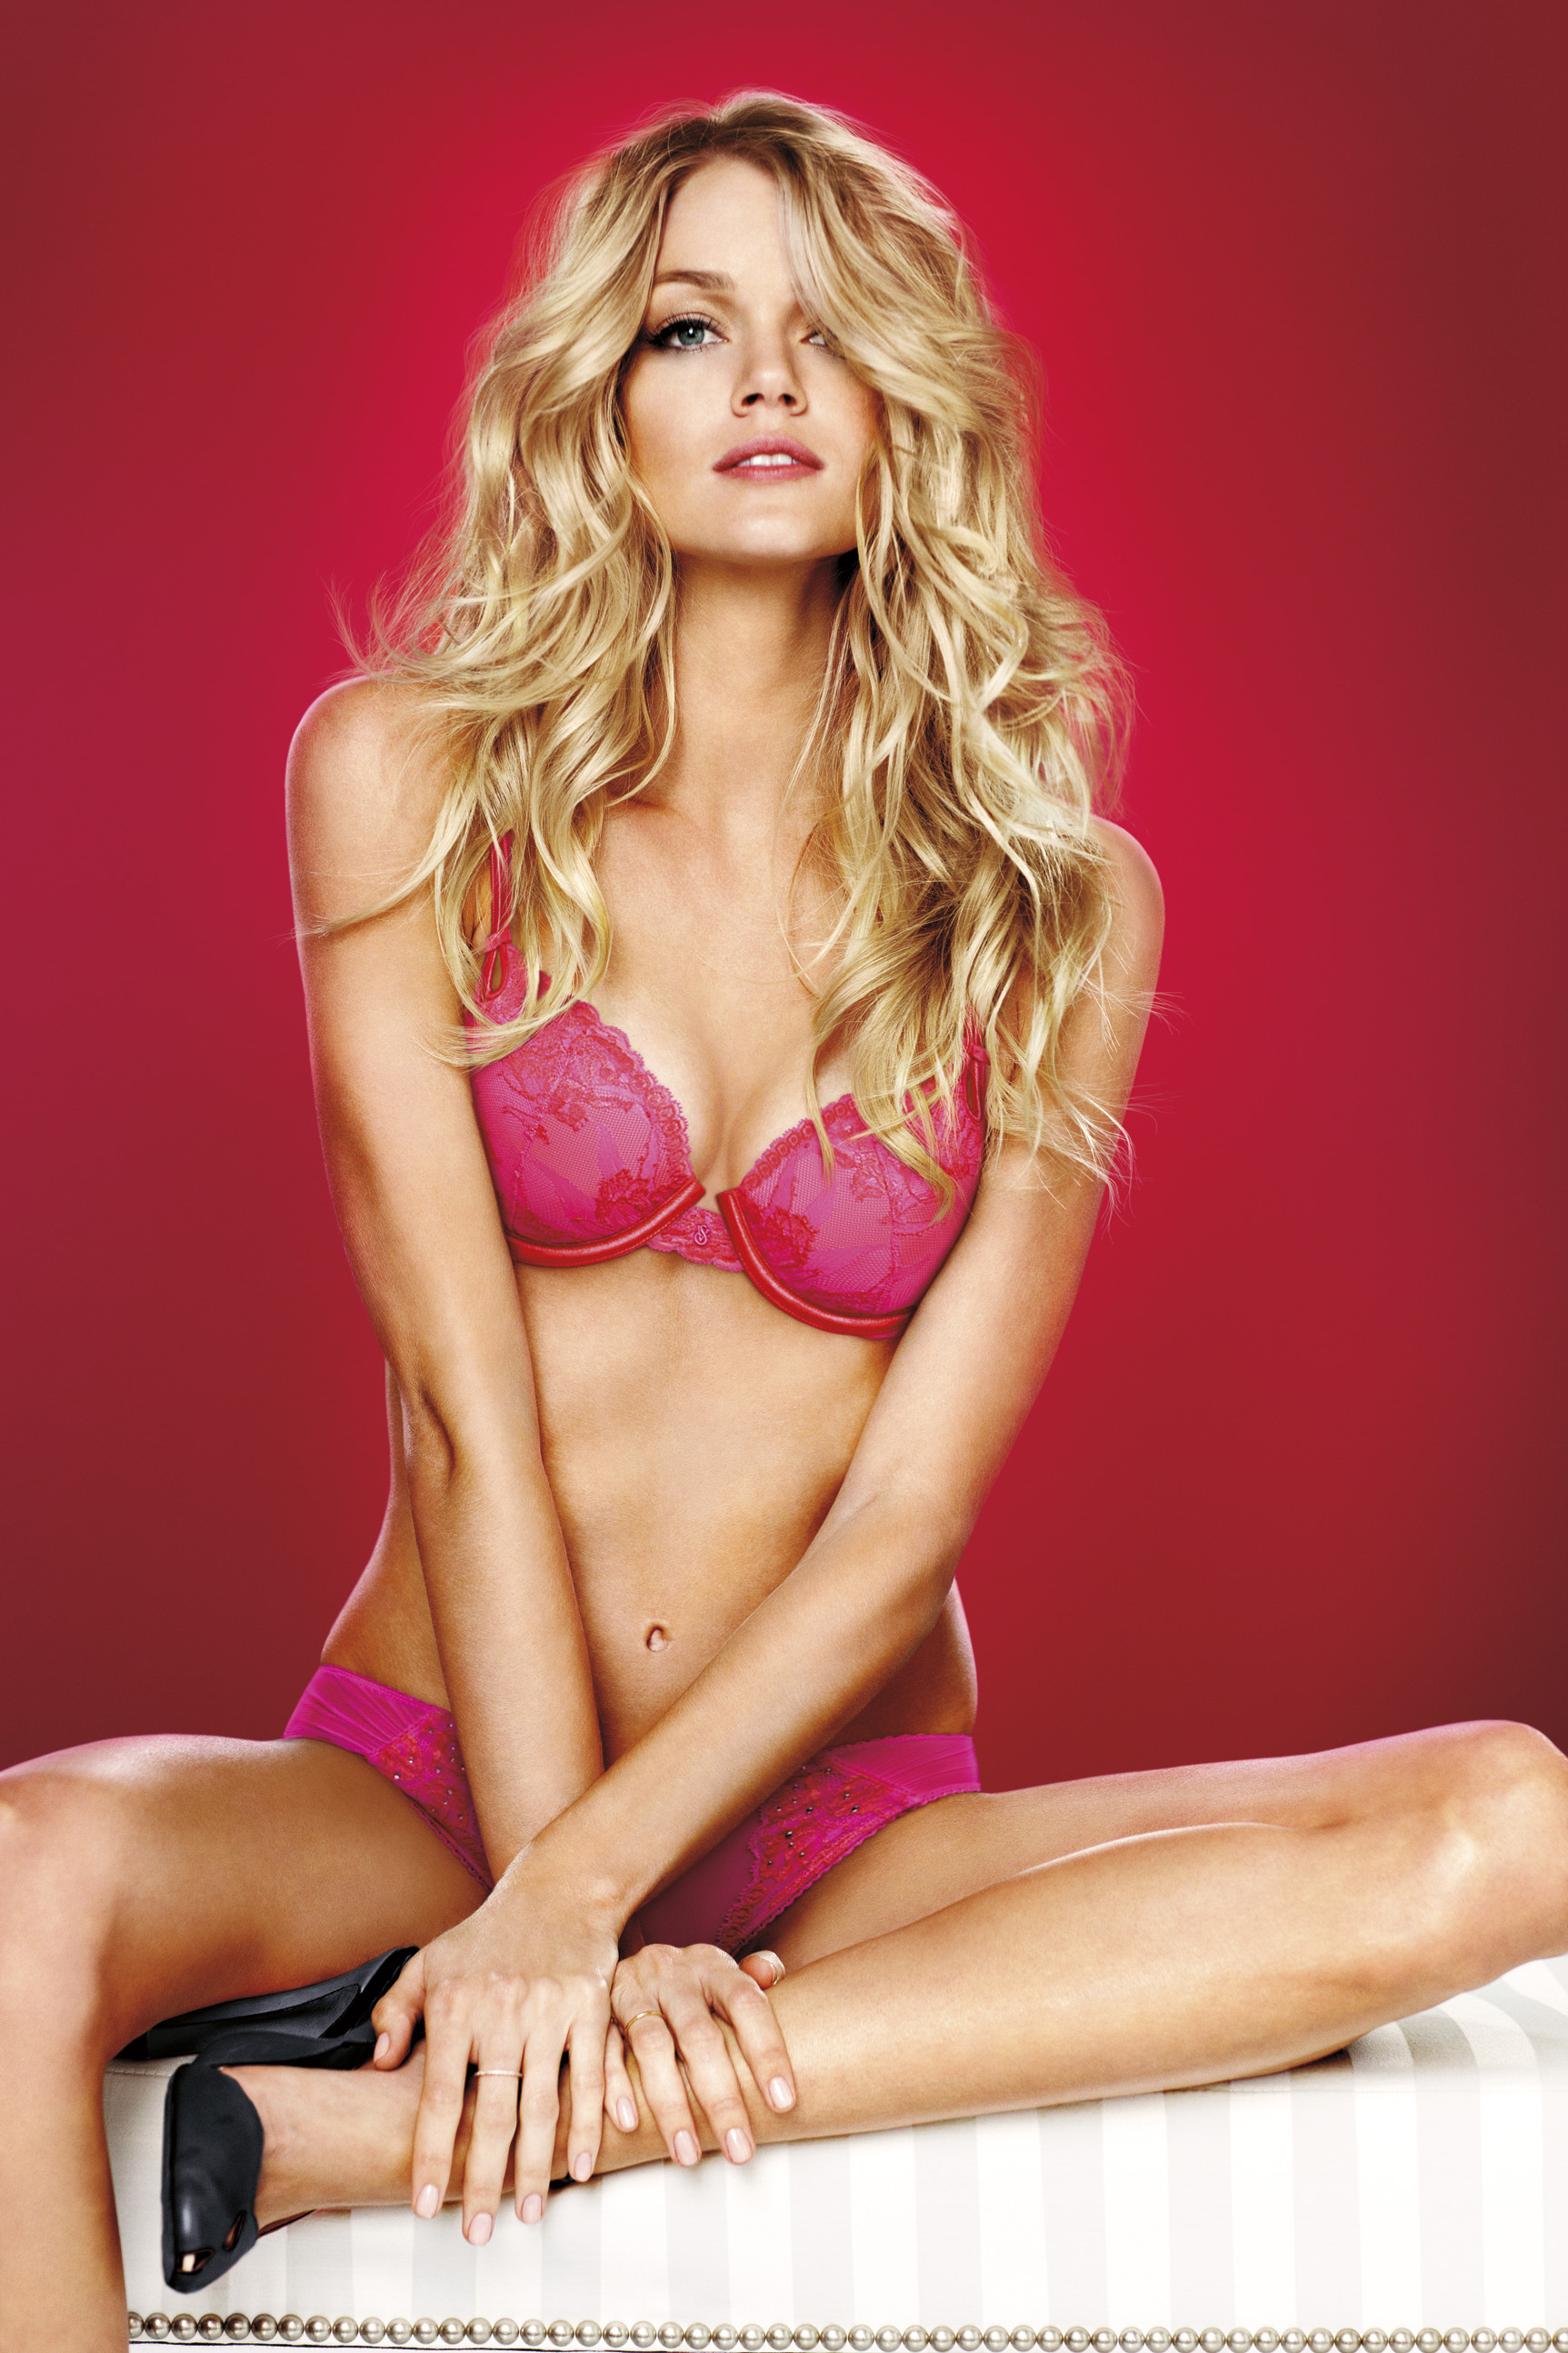 lindsay ellingson makeup tutoriallindsay ellingson 2016, lindsay ellingson vk, lindsay ellingson wallpaper, lindsay ellingson gif tumblr, lindsay ellingson beauty, lindsay ellingson makeup tutorial, lindsay ellingson tumblr, lindsay ellingson instagram, lindsay ellingson wedding, lindsay ellingson bellazon, lindsay ellingson twitter, lindsay ellingson, lindsay ellingson victoria secret, lindsay ellingson husband, lindsay ellingson listal, lindsay ellingson net worth, lindsay ellingson diet, lindsay ellingson height, lindsay ellingson sean clayton, lindsay ellingson facebook